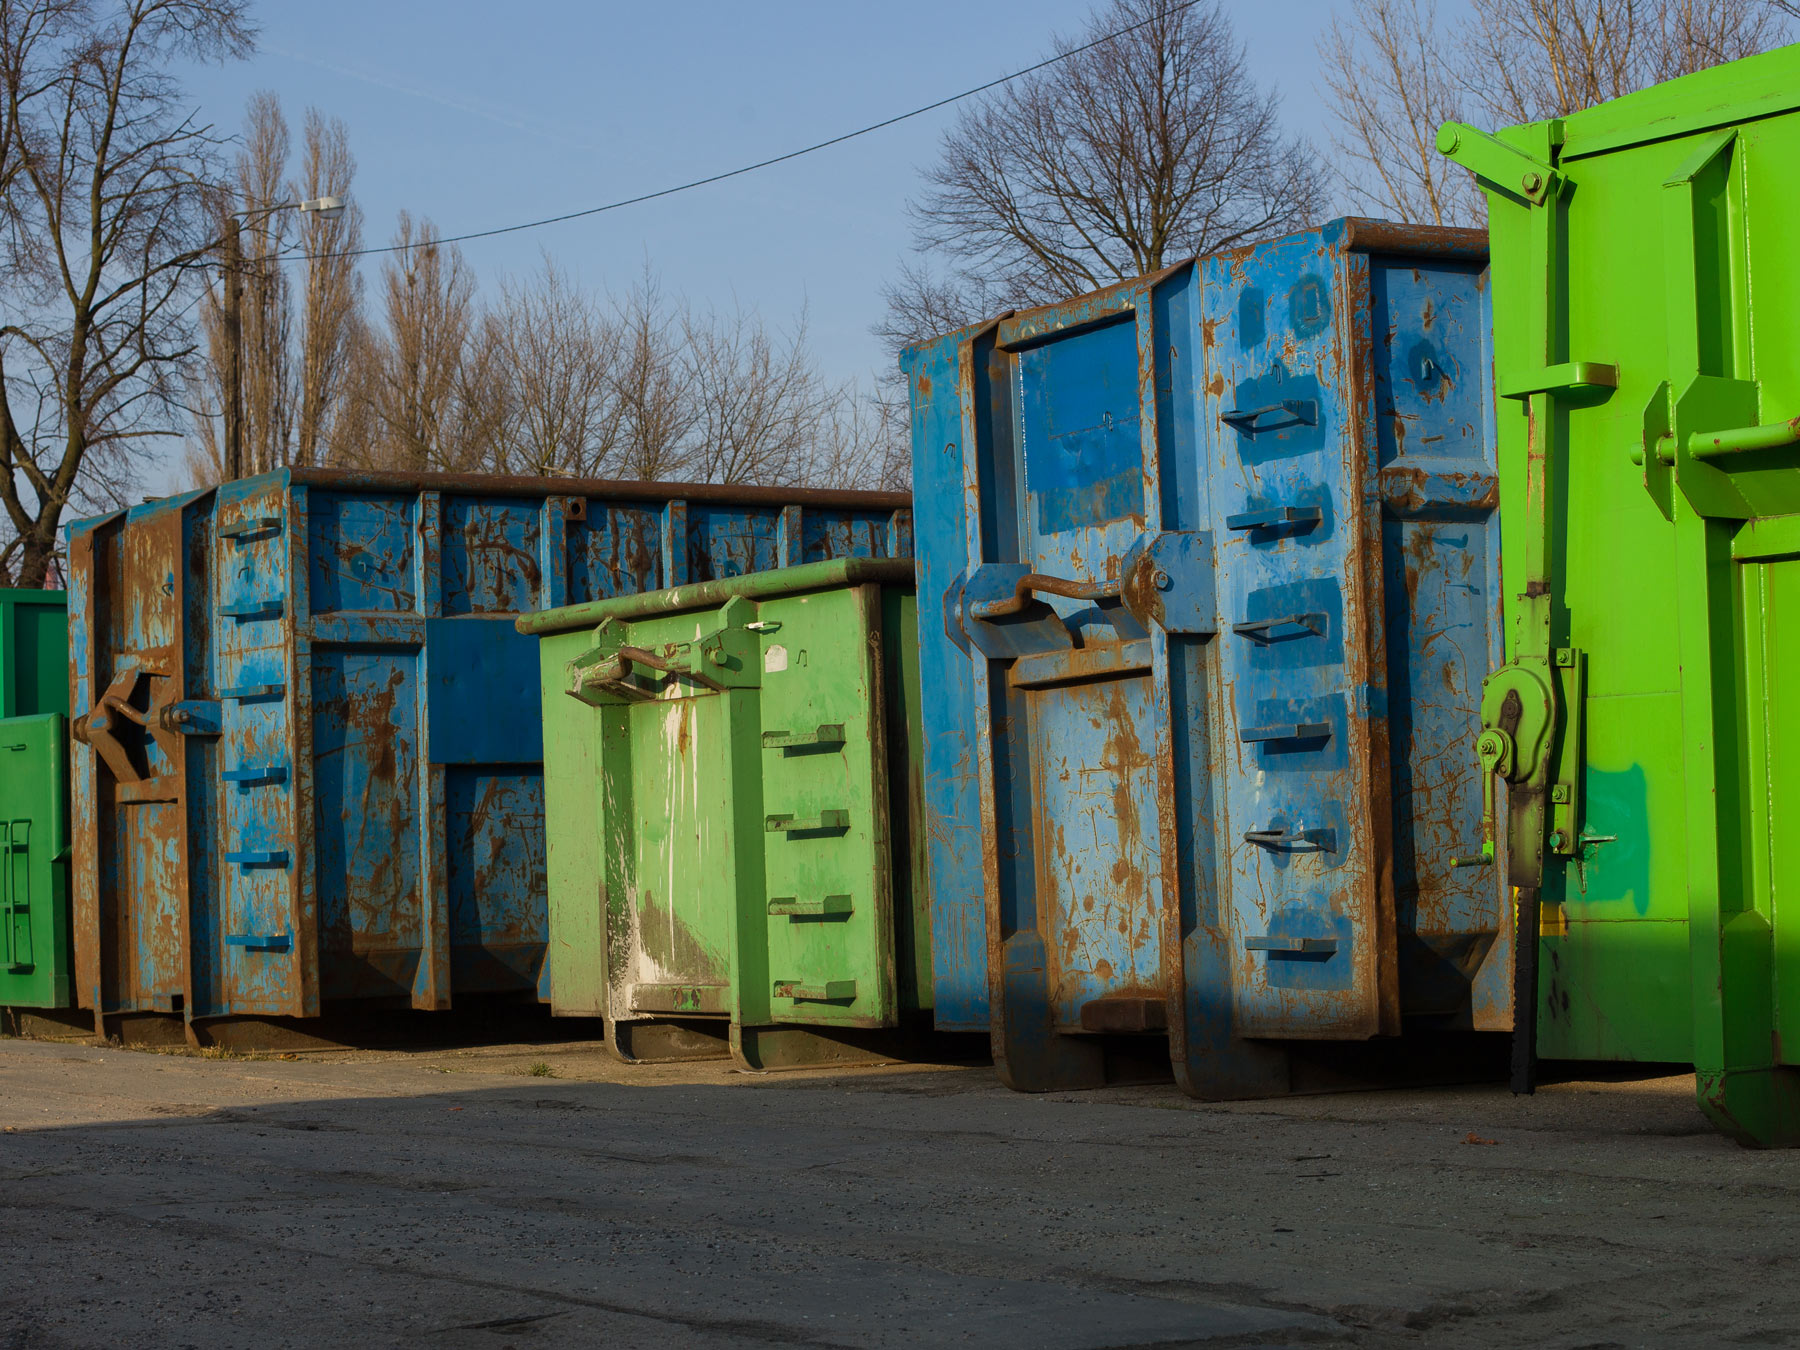 Construction Dumpster Sizes: What To Get For Your Site